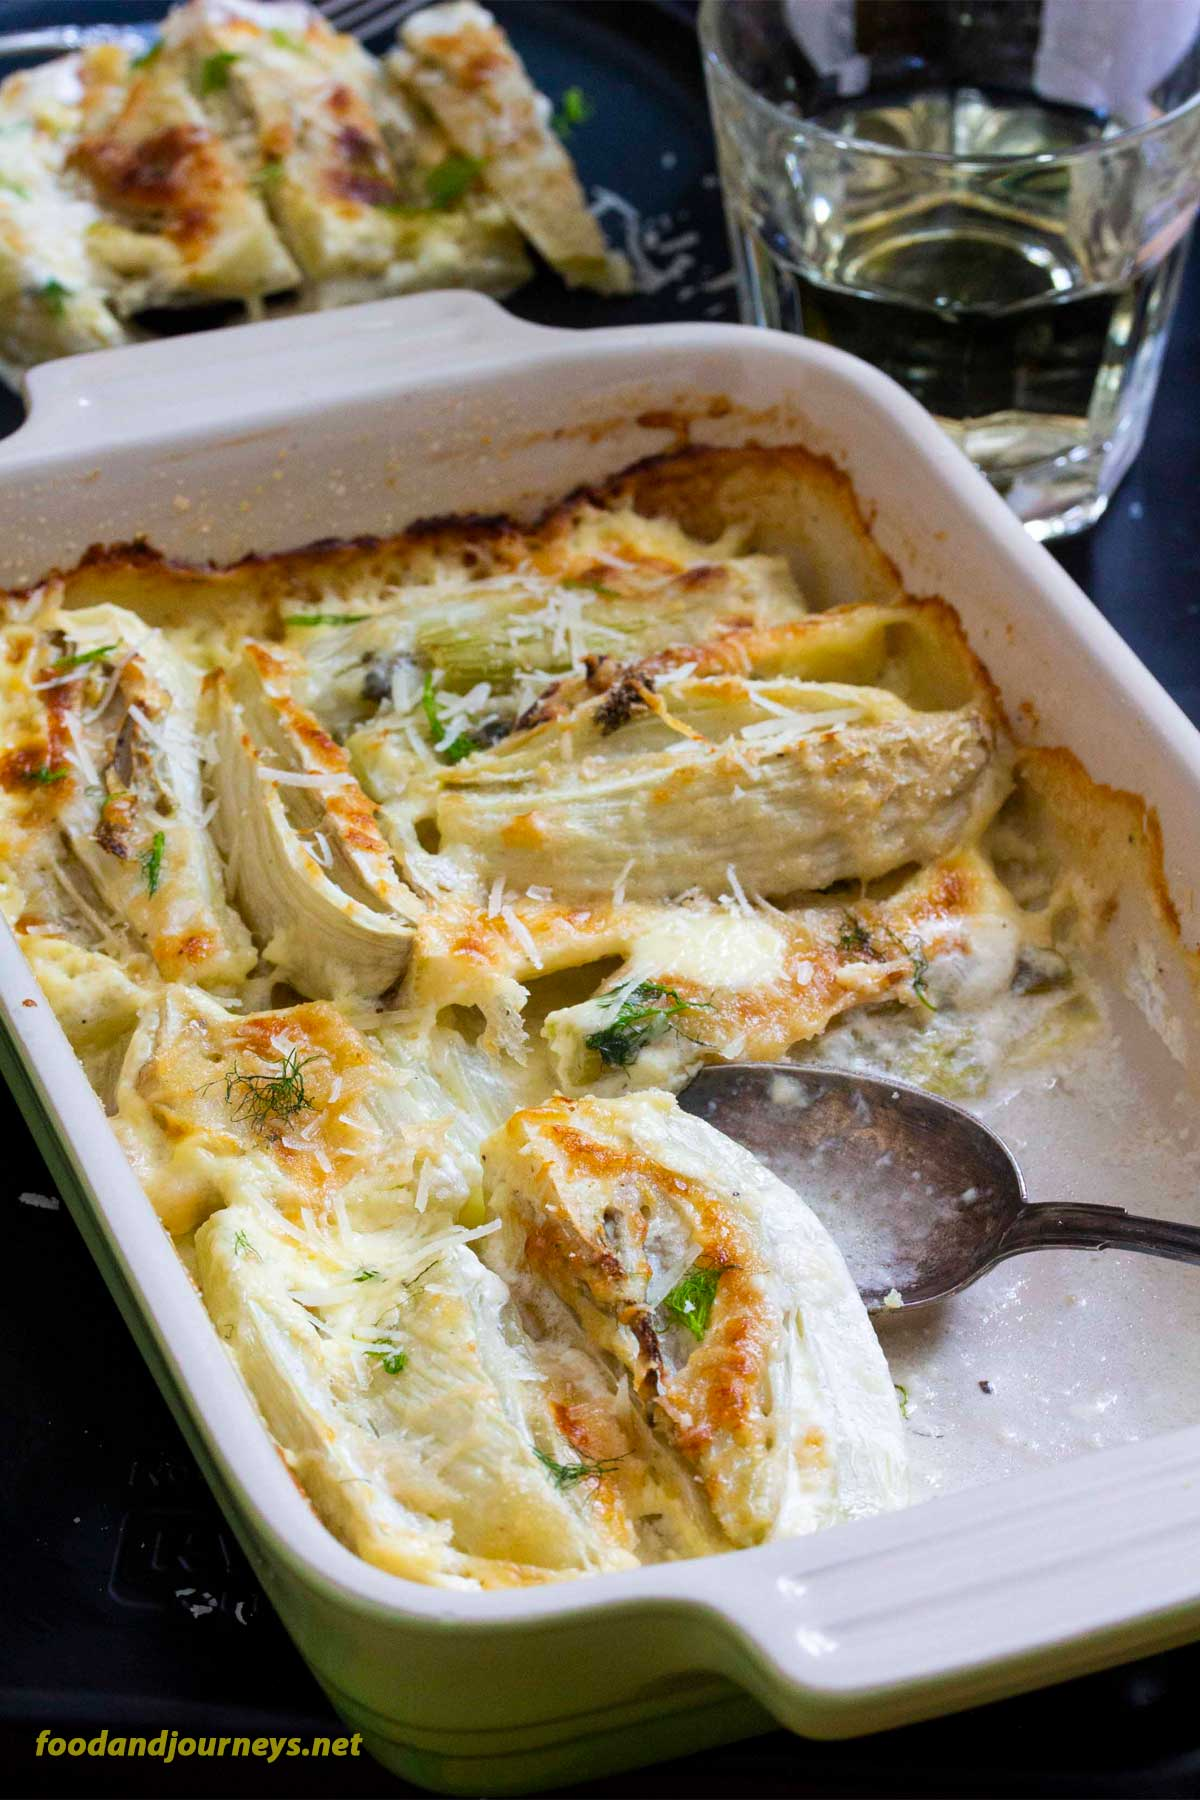 Taking a serving of Baked Fennel with Parmesan & Cream. You would be surprised on how easy it is to prepare this vegetable side dish. Creamy fennel bulbs coated with parmesan and breadcrumbs on every bite!